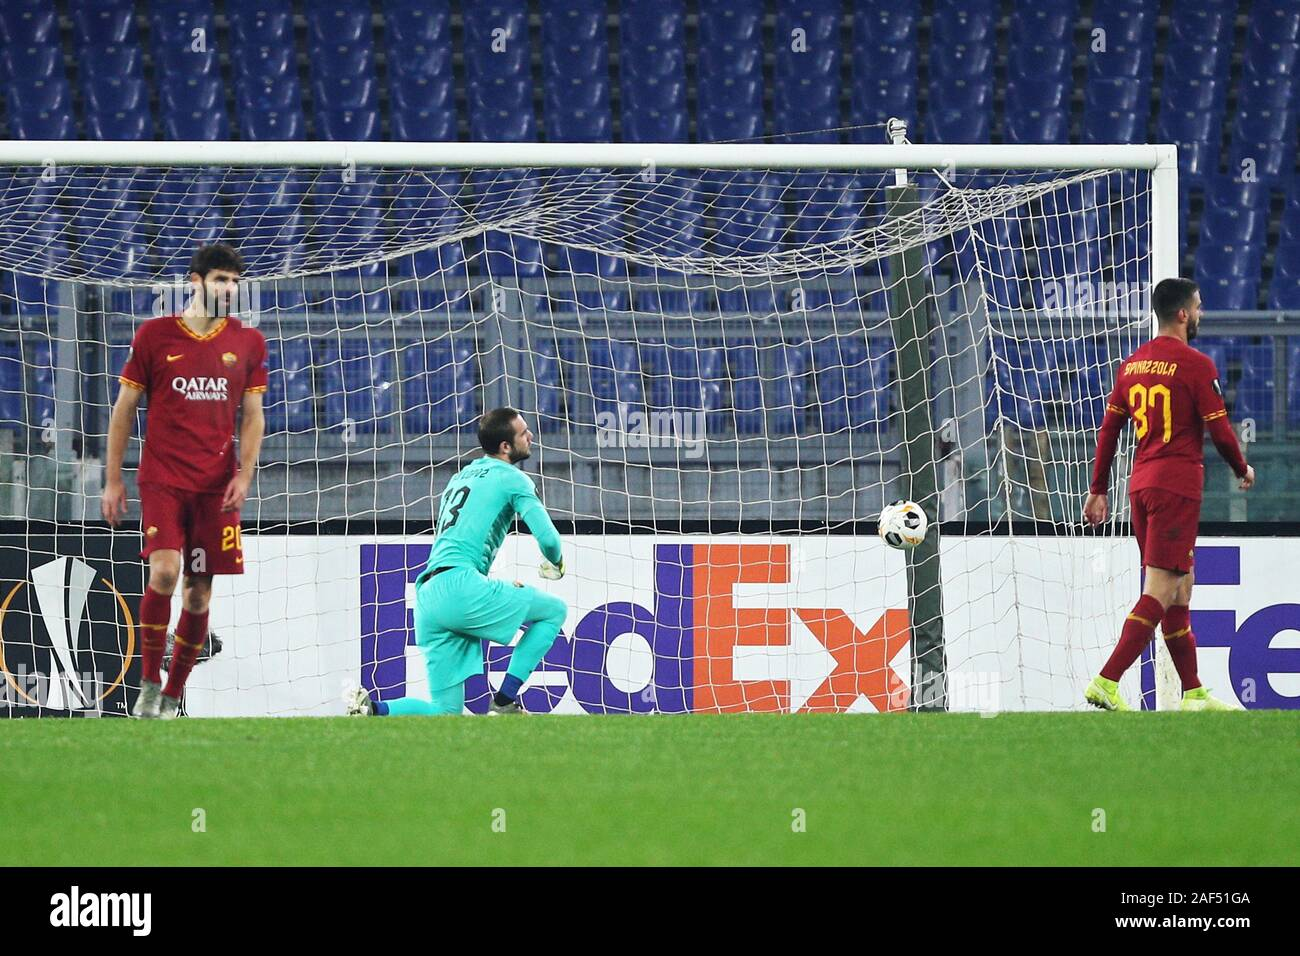 Roma players react after Shon Weissman of Wolfsberg scores 2-2 goal during the UEFA Europa League, Group J football match between AS Roma and Wolfsberg AC on December 12, 2019 at Stadio Olimpico in Rome, Italy - Photo Federico Proietti/ESPA-Images Stock Photo